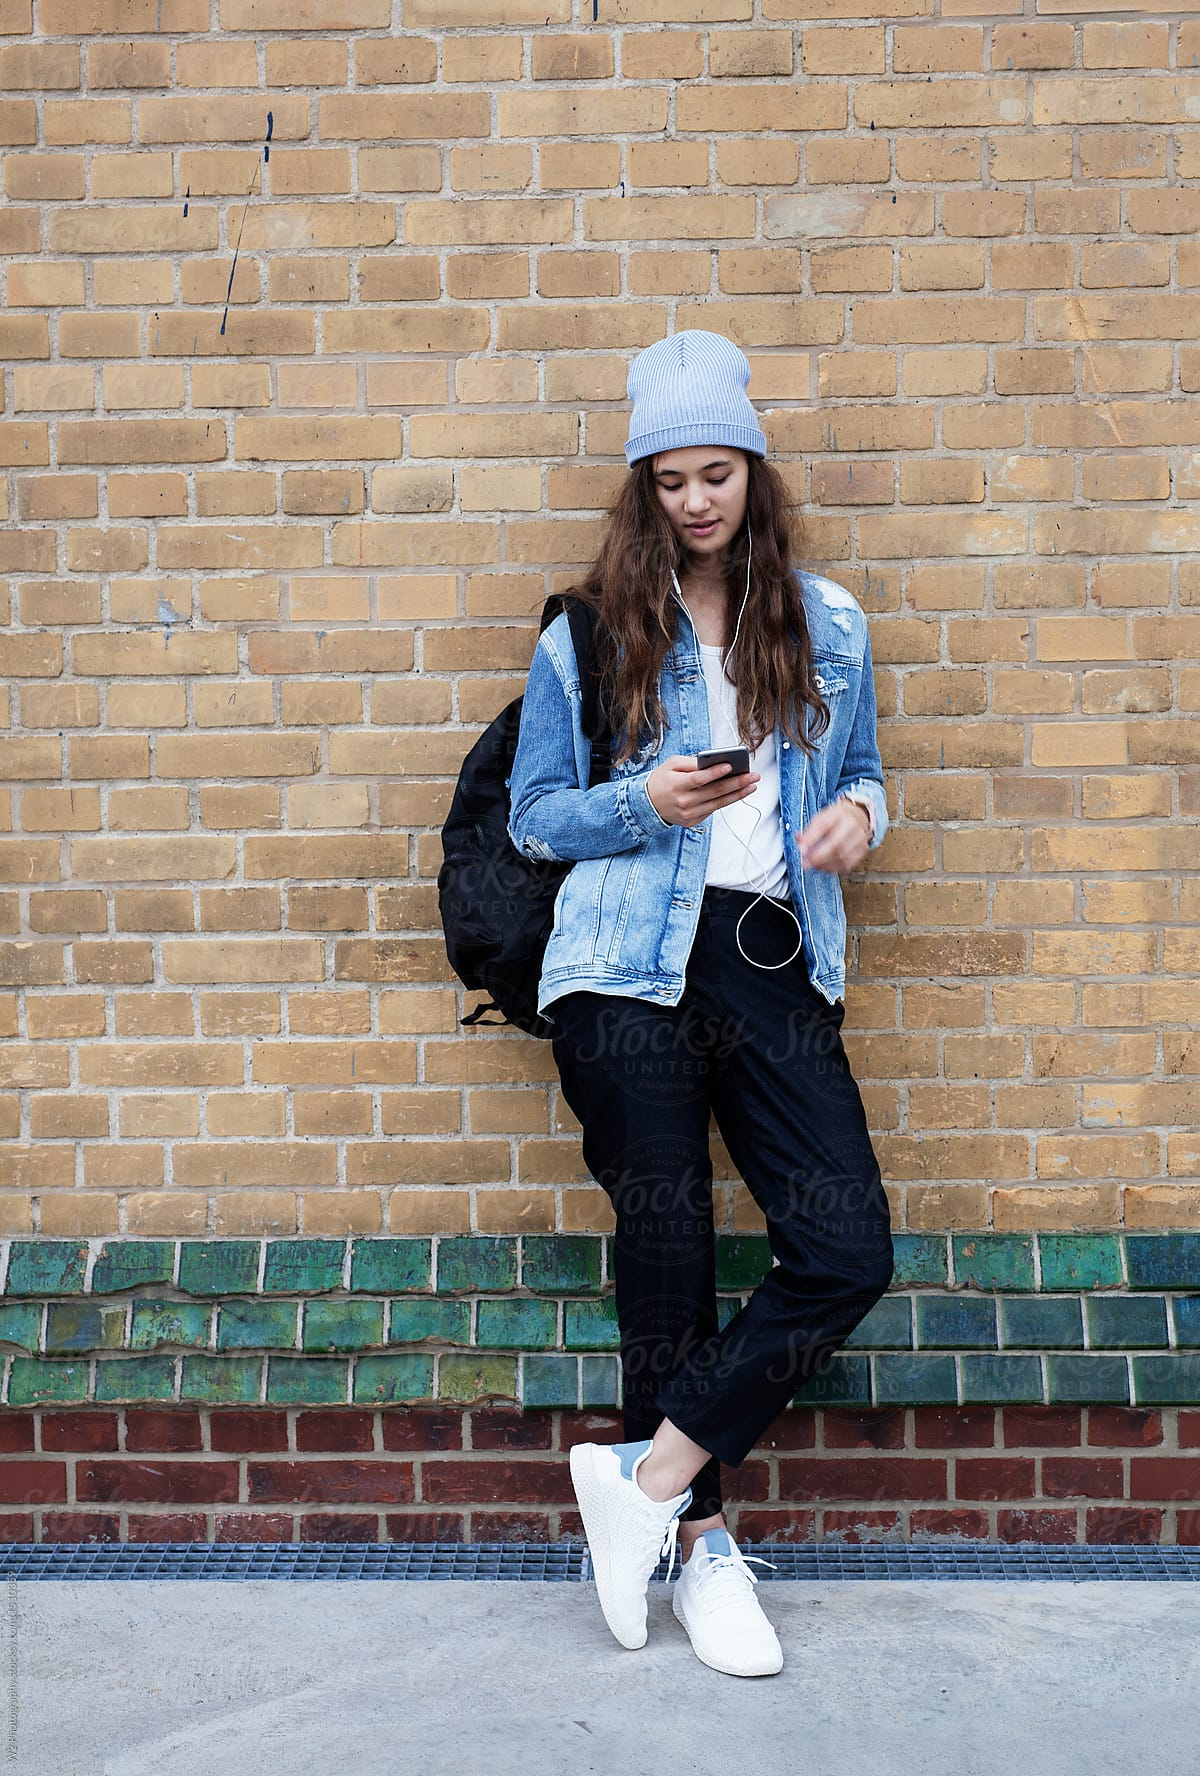 Stock Photo A Young Woman Listening To Music And Leaning On A Brick Wall